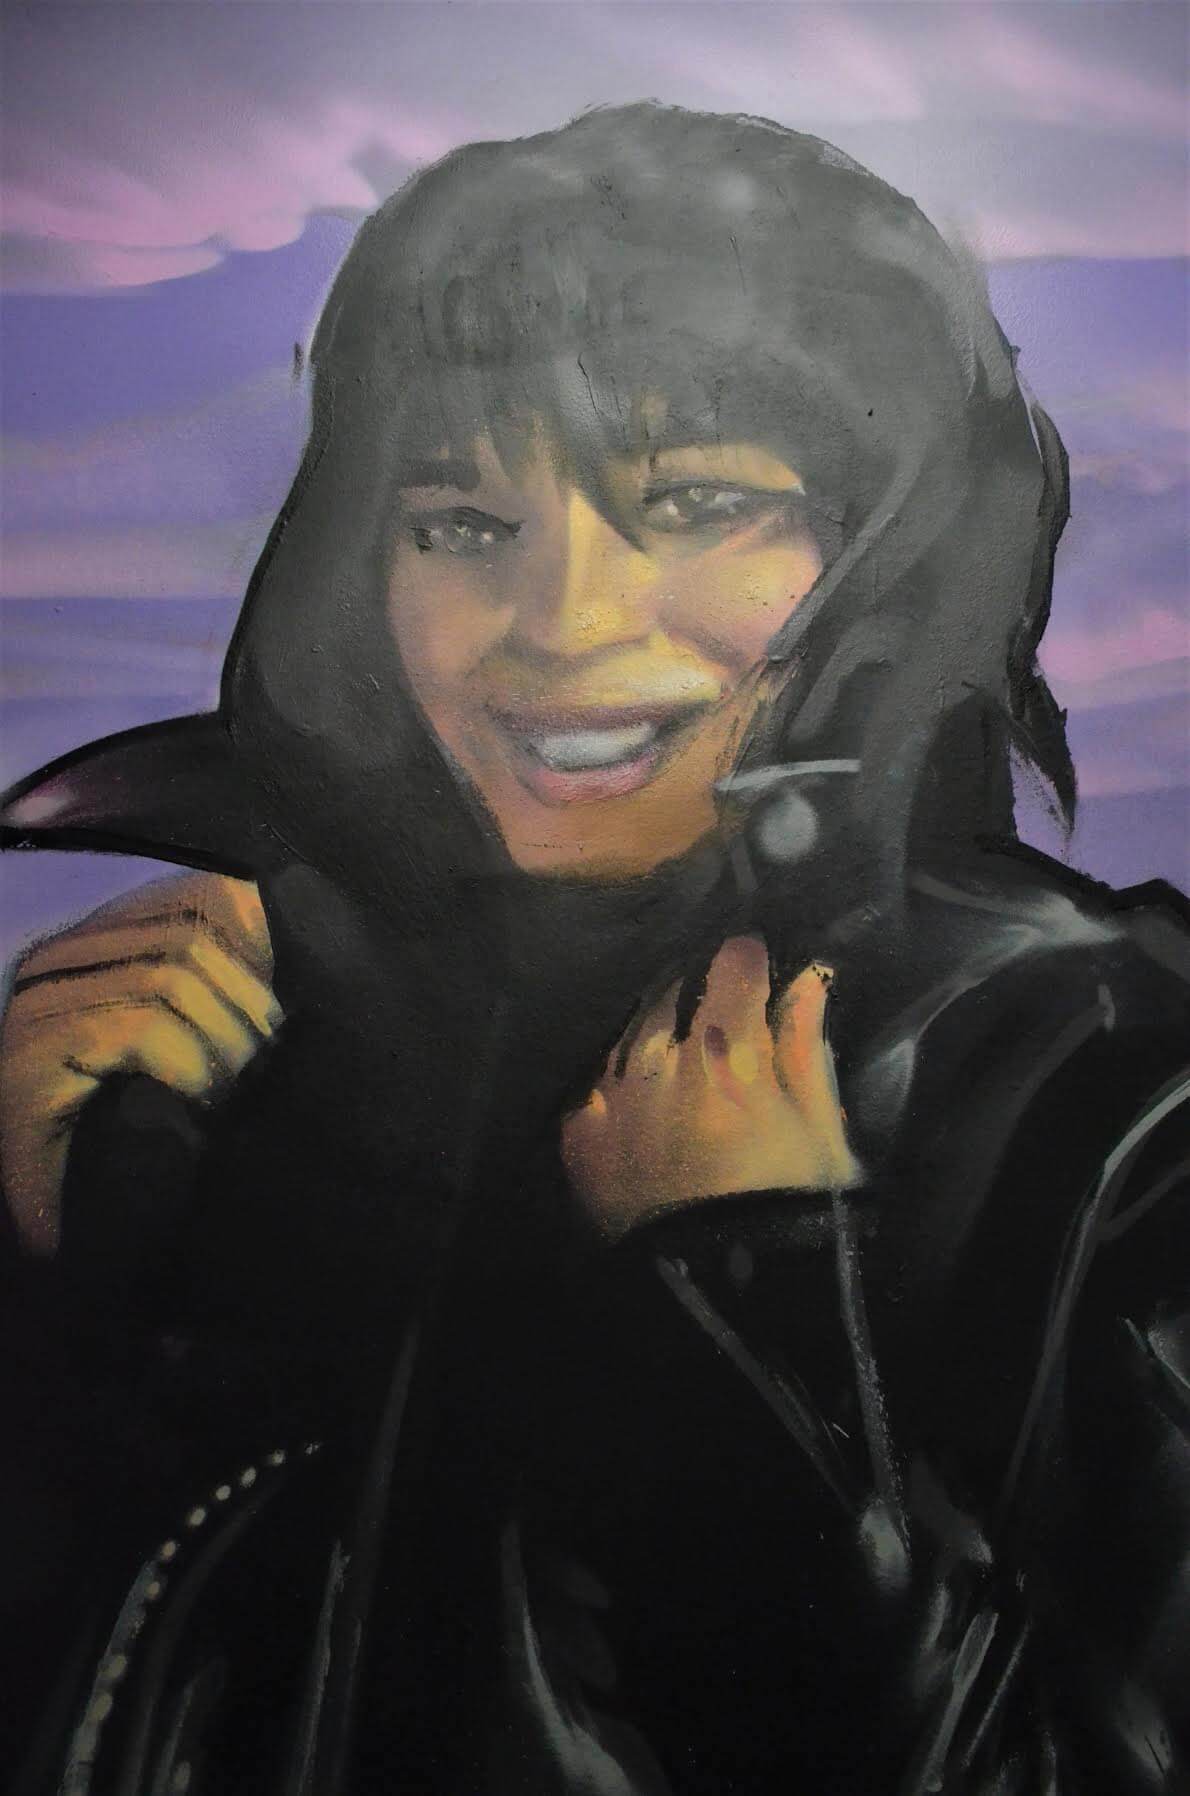 Pat Benatar greets you before you enter the club/stage room.